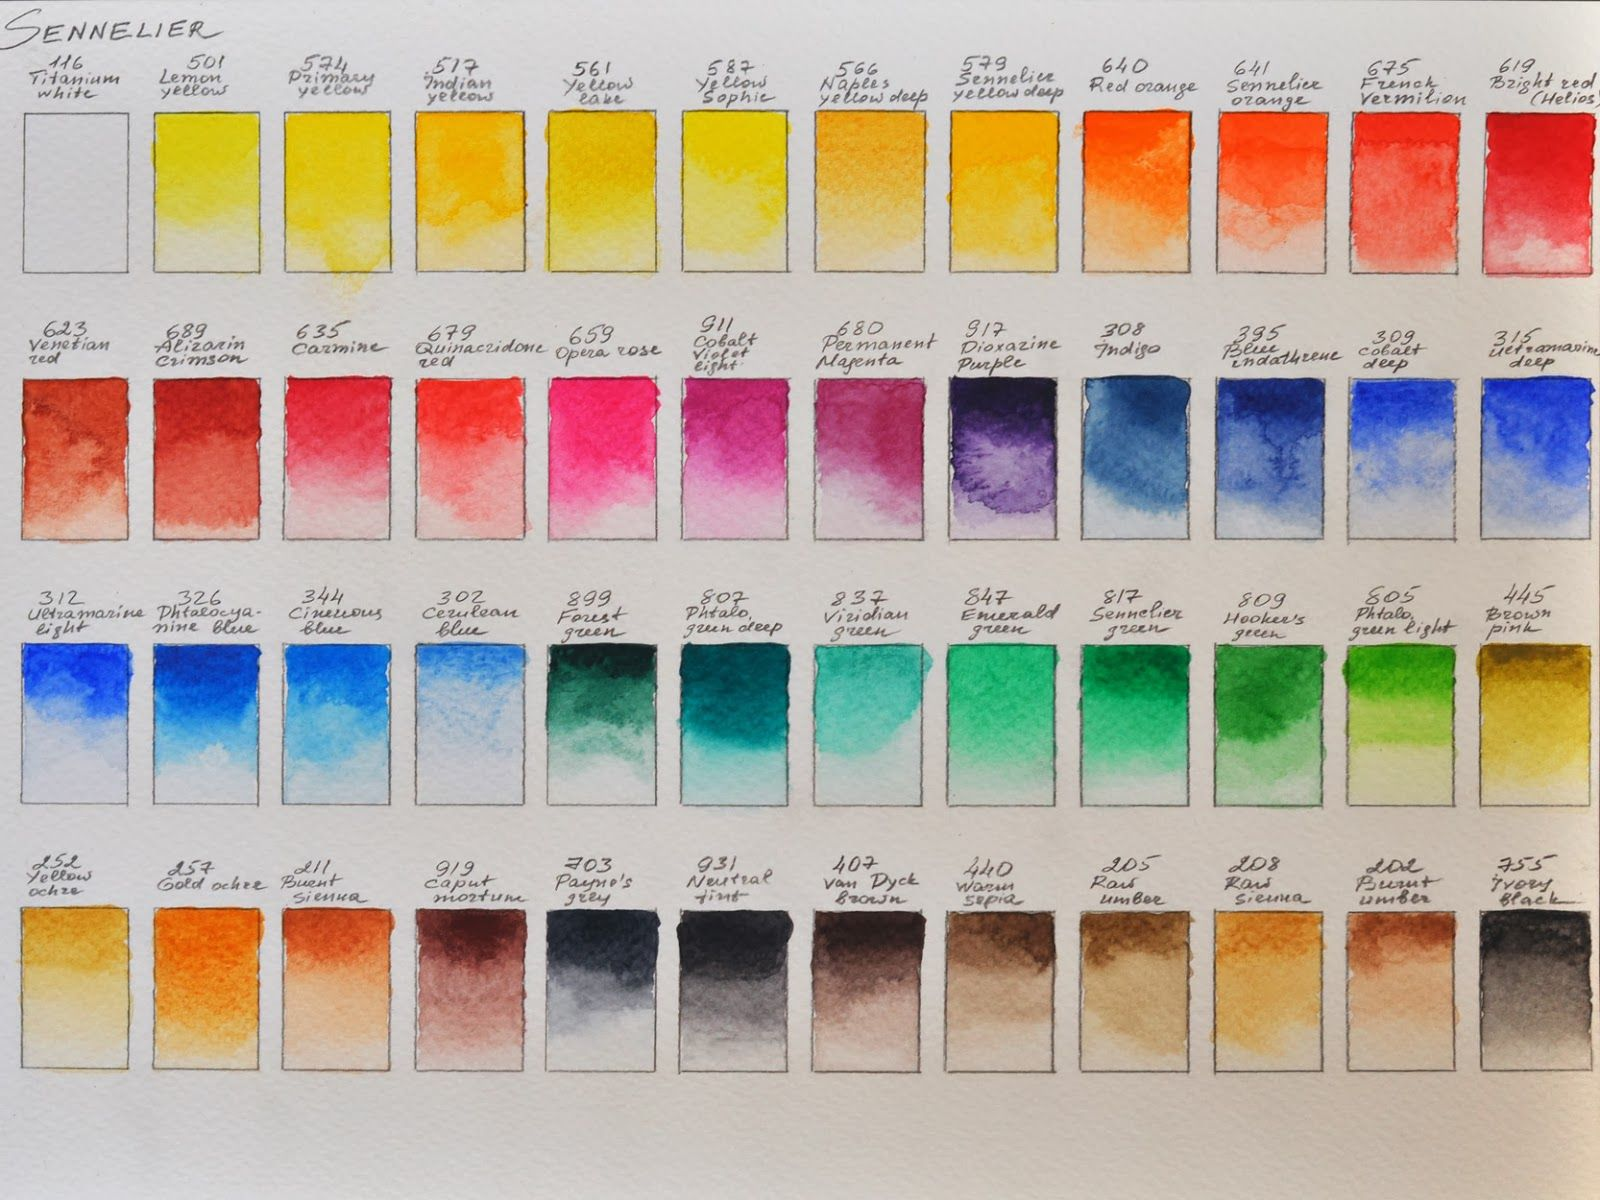 Sennelier Watercolors In A Good Order Sennelier Watercolor